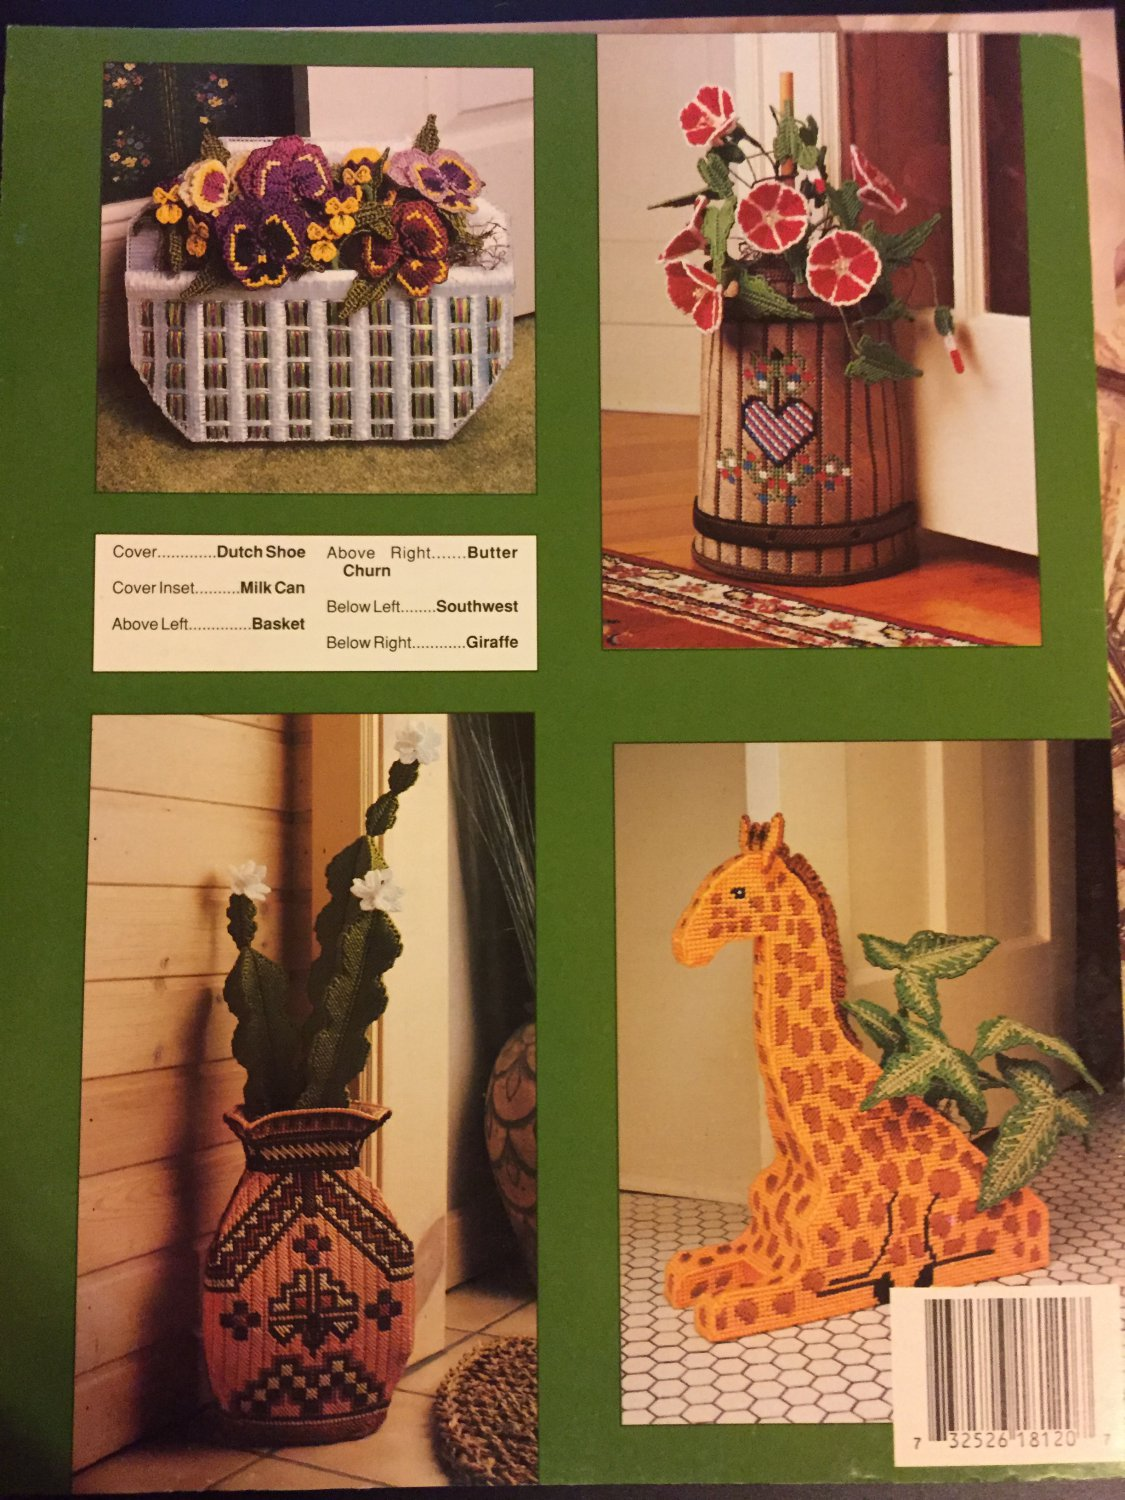 Decorative Doorstops Annie's Attic Plastic Canvas Pattern Leaflet #87R12